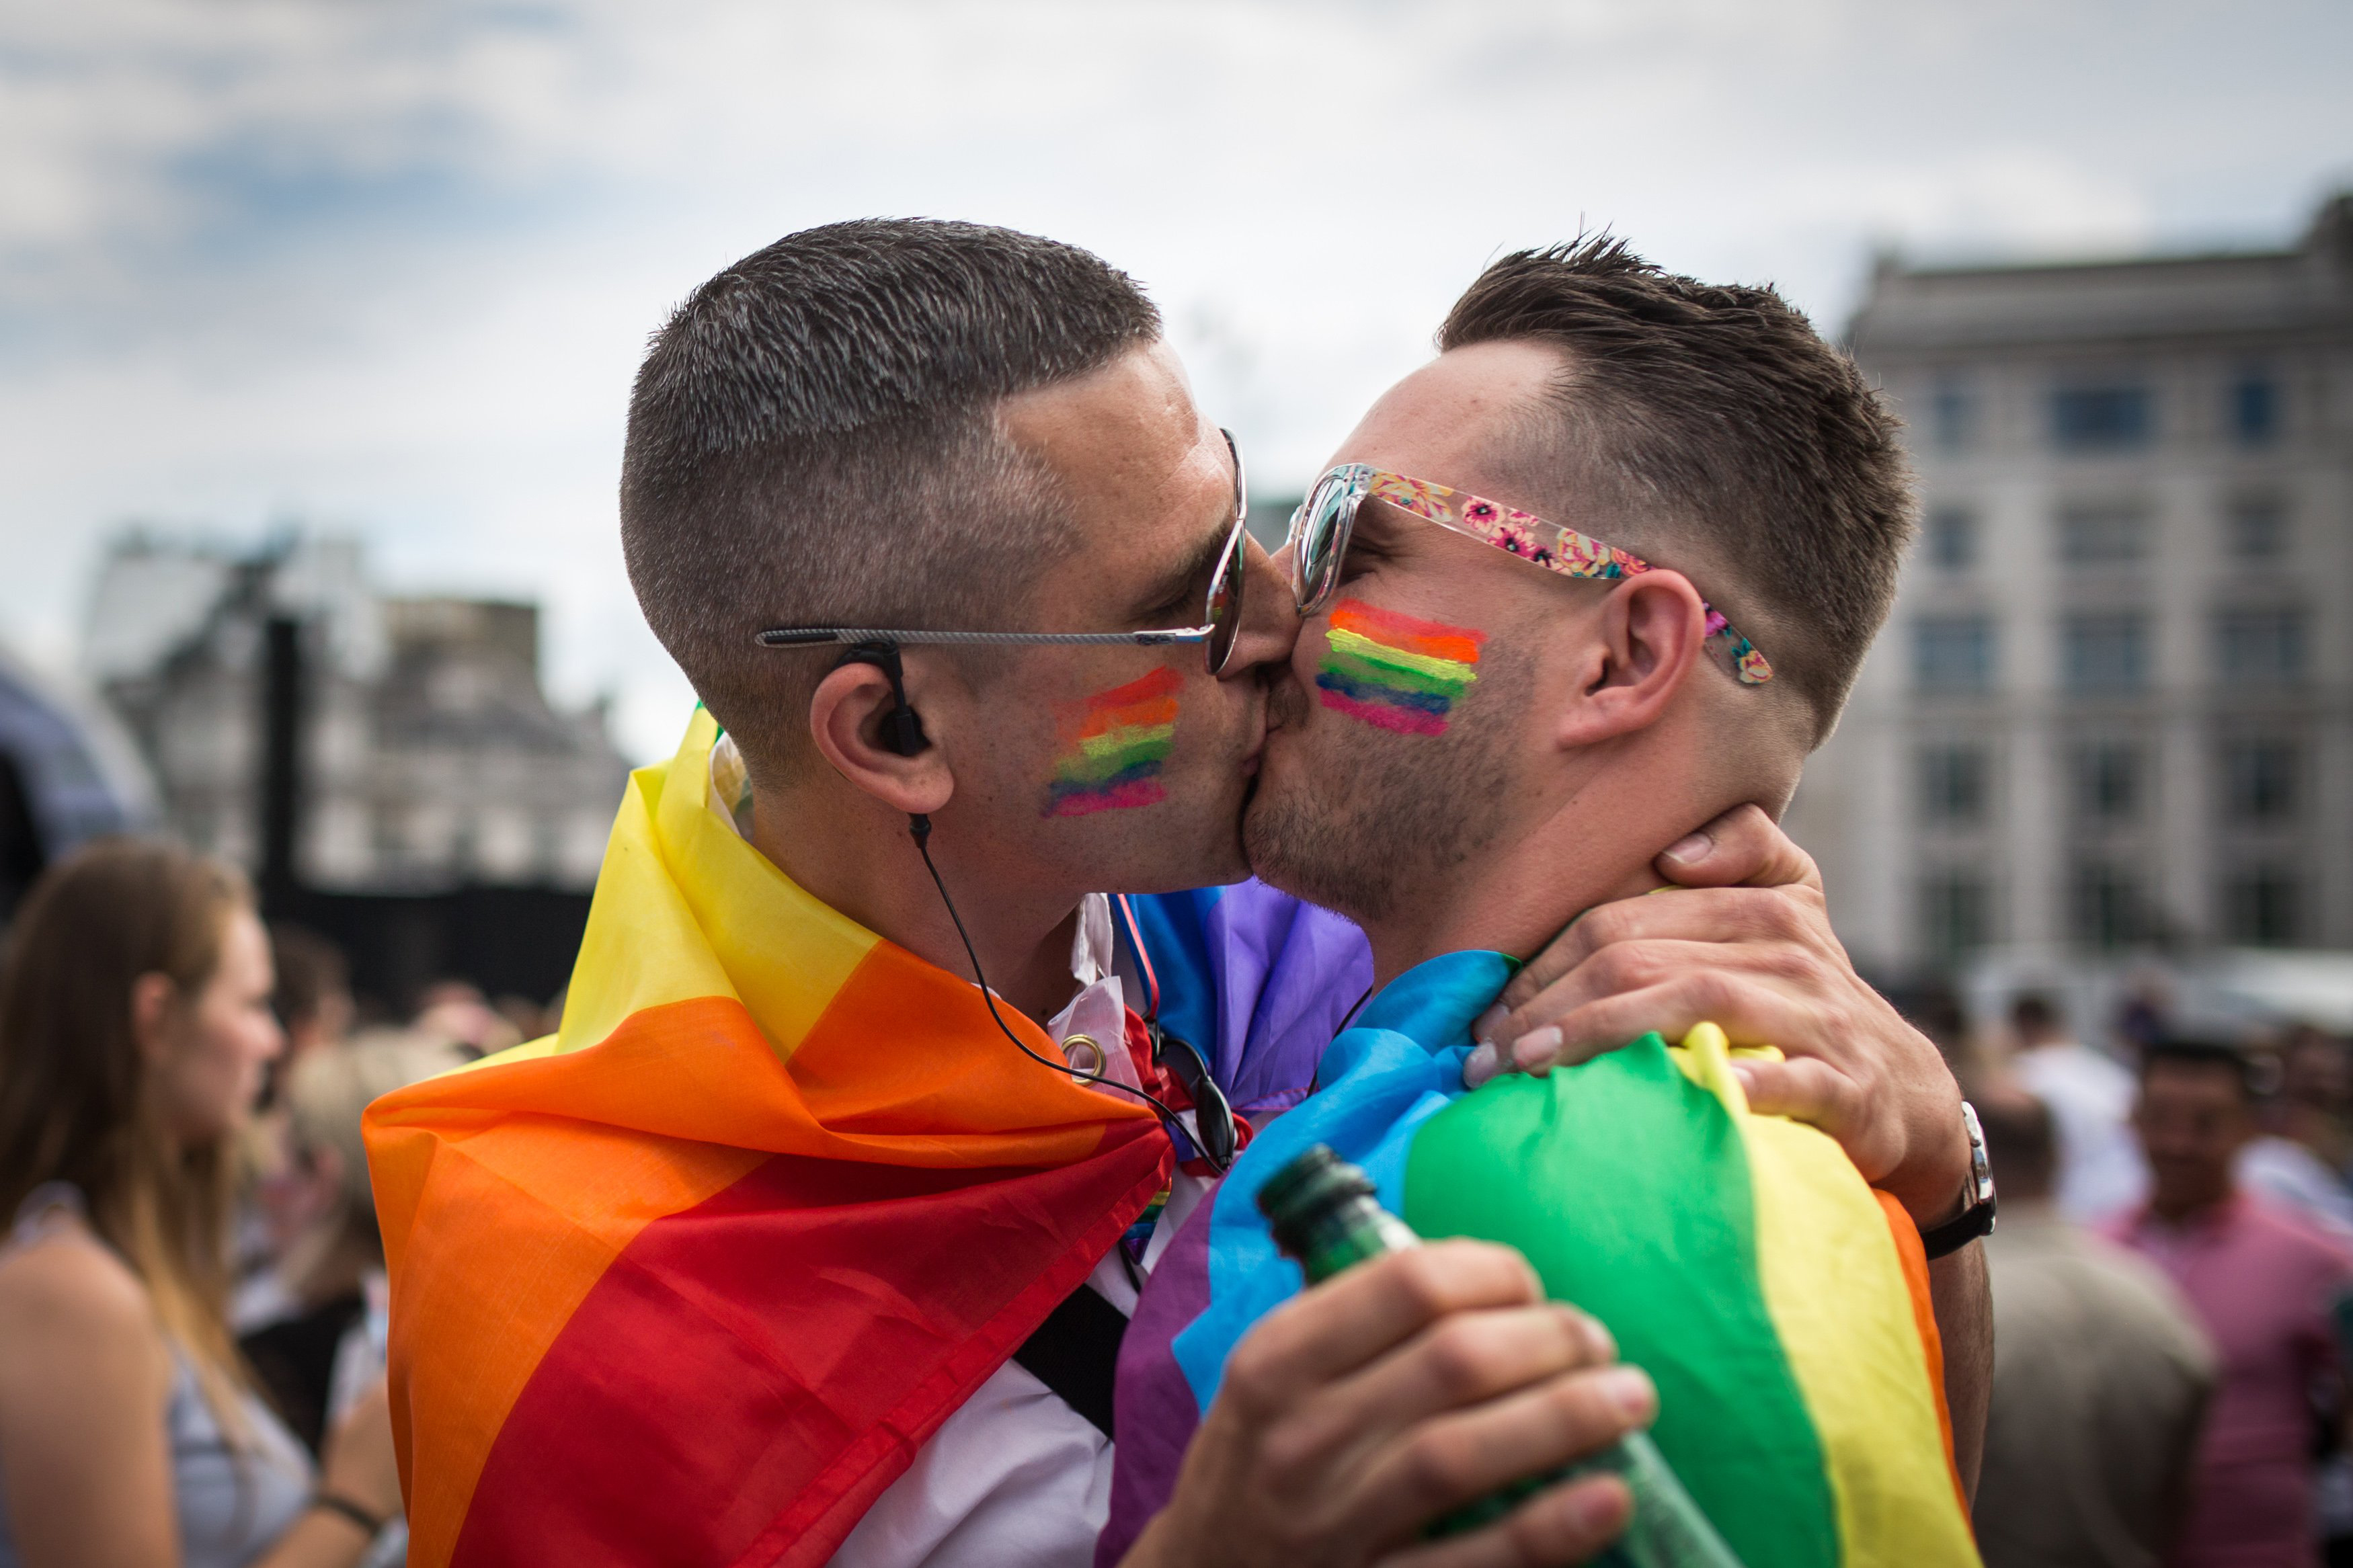 A couple kiss in Trafalgar Square after the annual Pride in London Parade on June 27, 2015 in London.